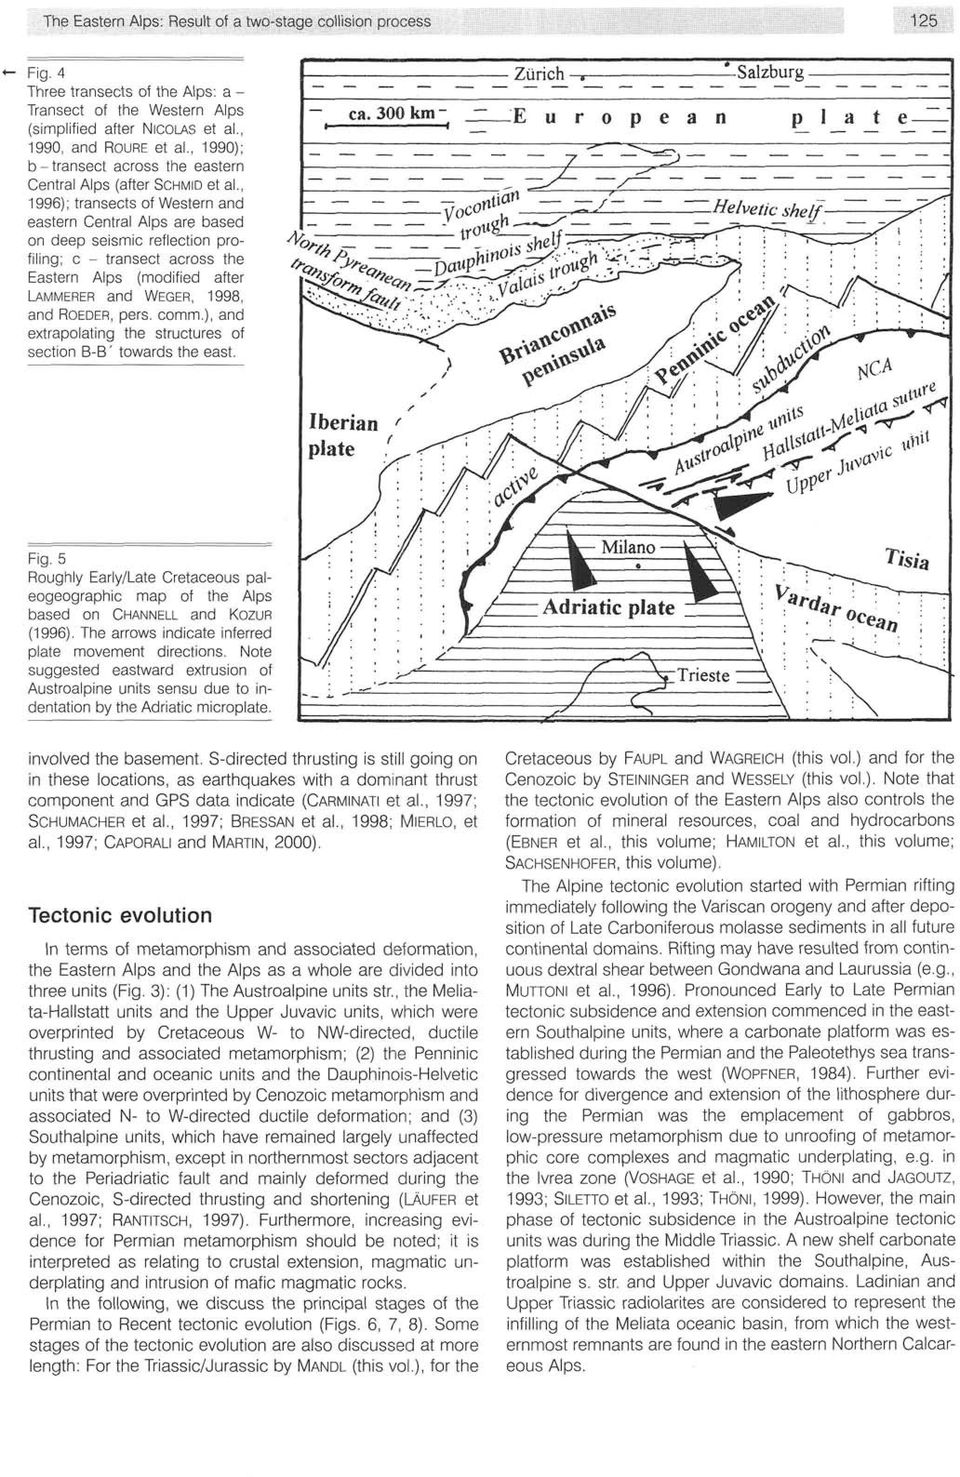 , 1996); transects of Western and eastern Central Alps are based on deep seismic reflection profiling; c - transect across the Eastern Alps (modified after LAMMERER and WEGER, 1998, and ROEDER, pers.